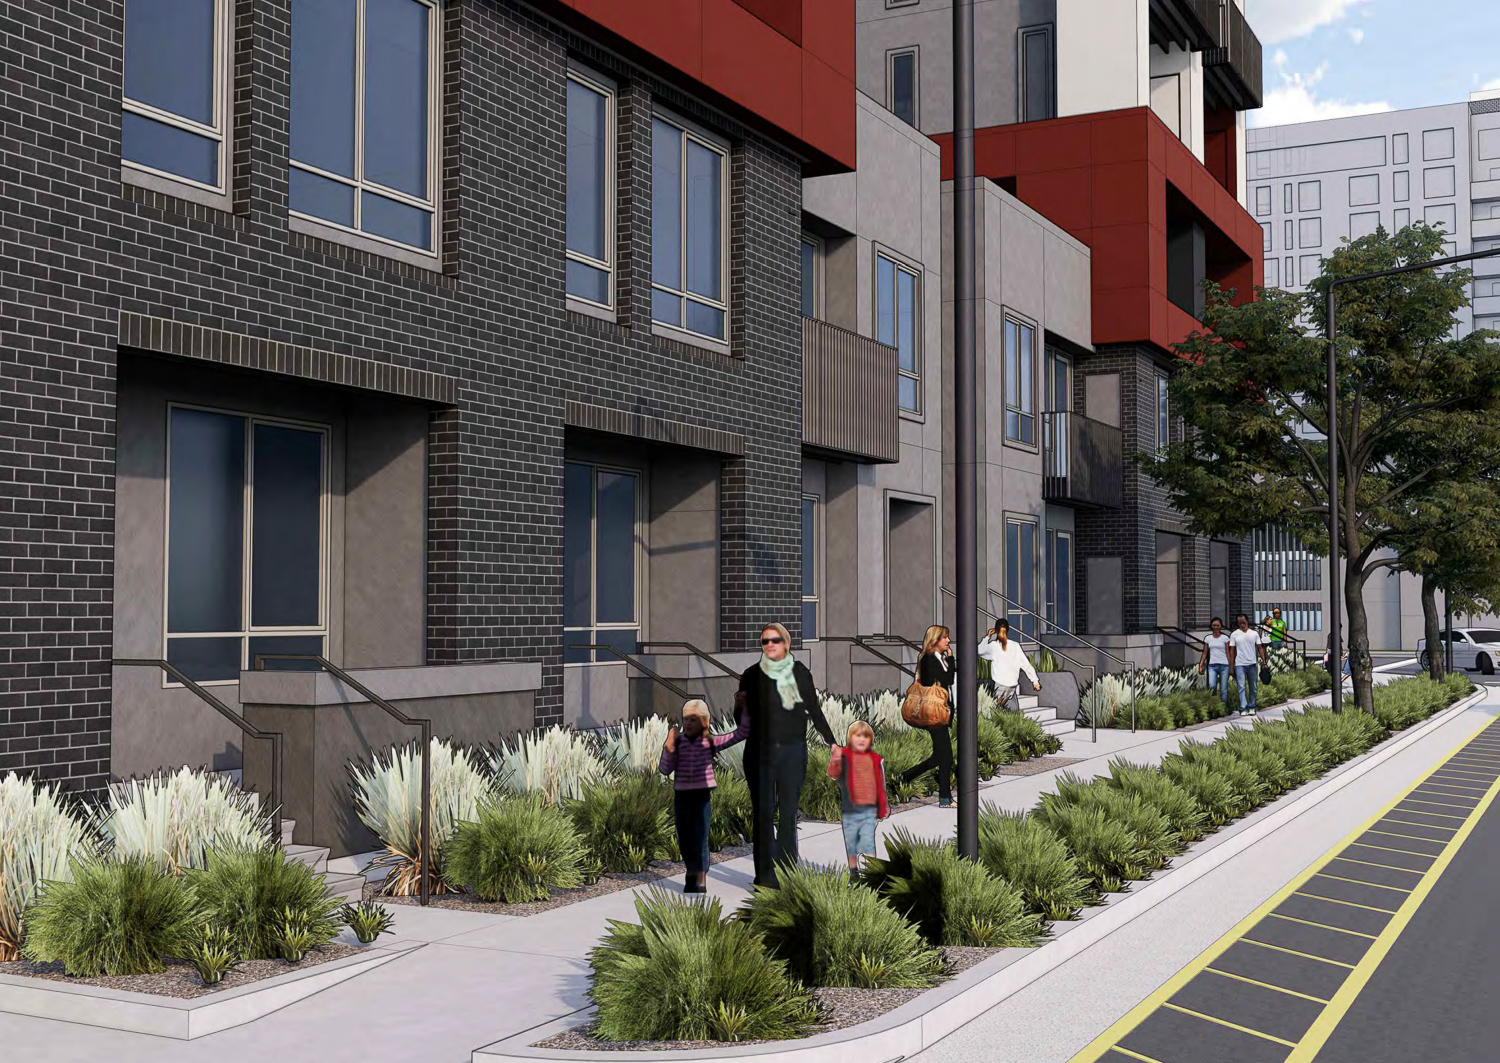 2233 Calle del Mundo frontage facing east, rendering by KTGY Architects